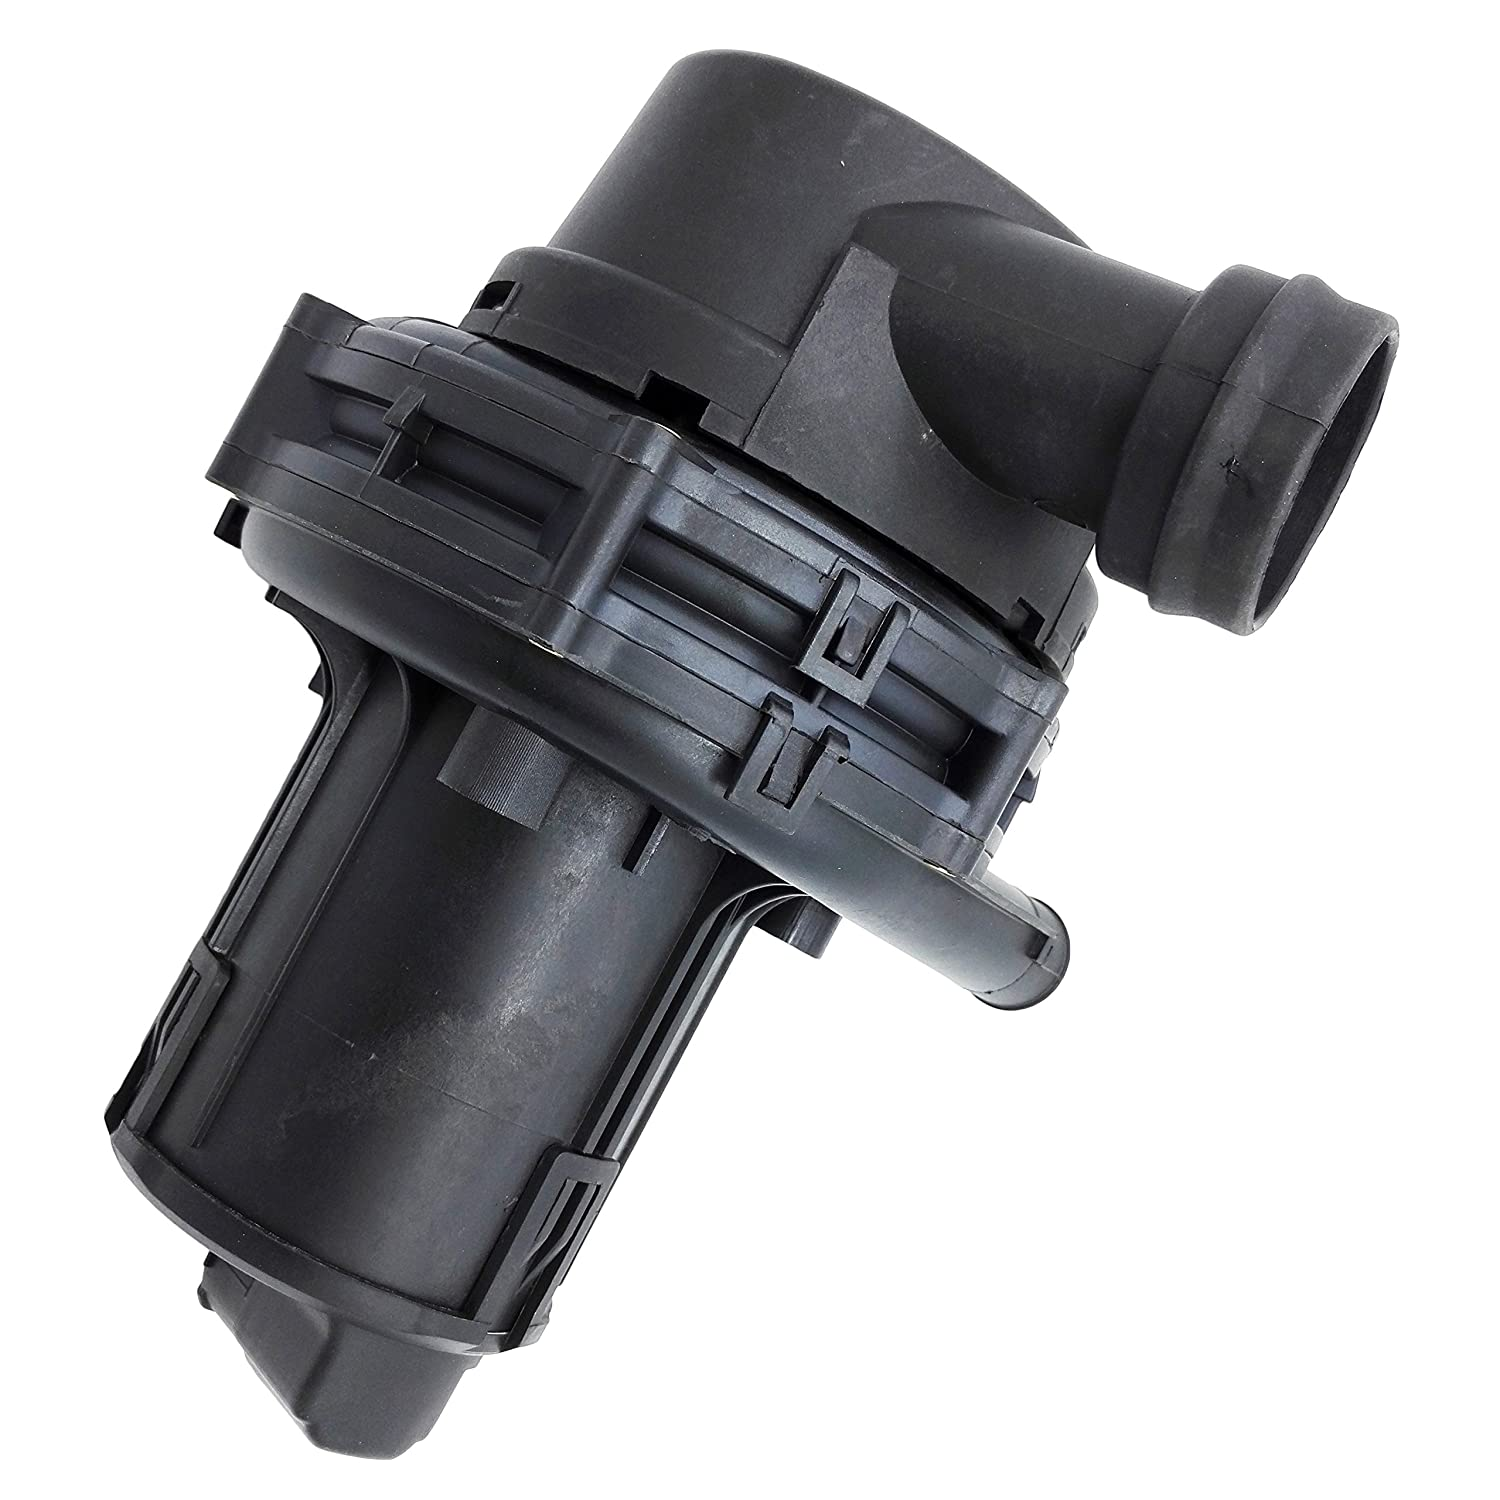 OKAY MOTOR Secondary Air Injection Pump for 96-99 BMW E36 323is 323ic 328i 328is 328ic Okay Motor Products Inc.